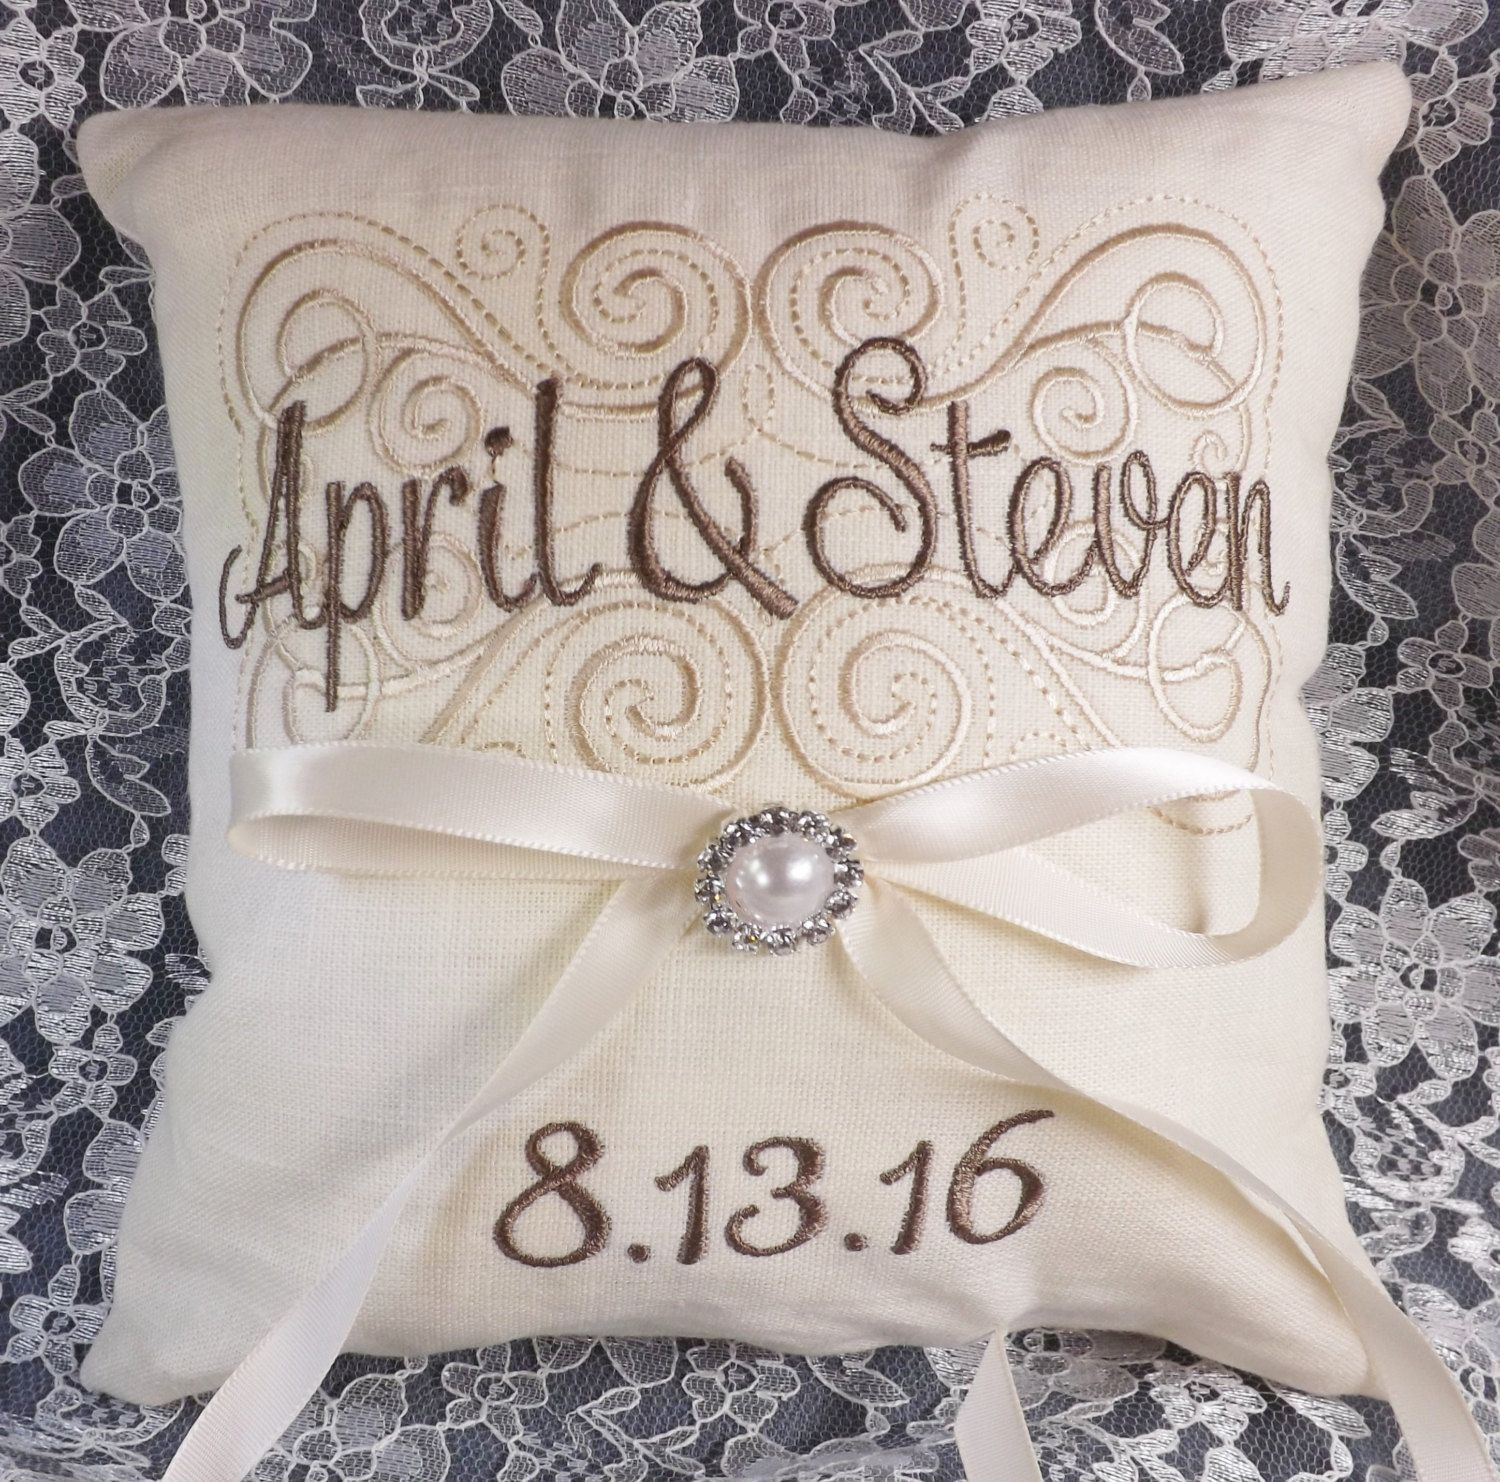 boho ring pillow suitable too for baby names Customizable monograms embroidery hoop for weddings personalized gift